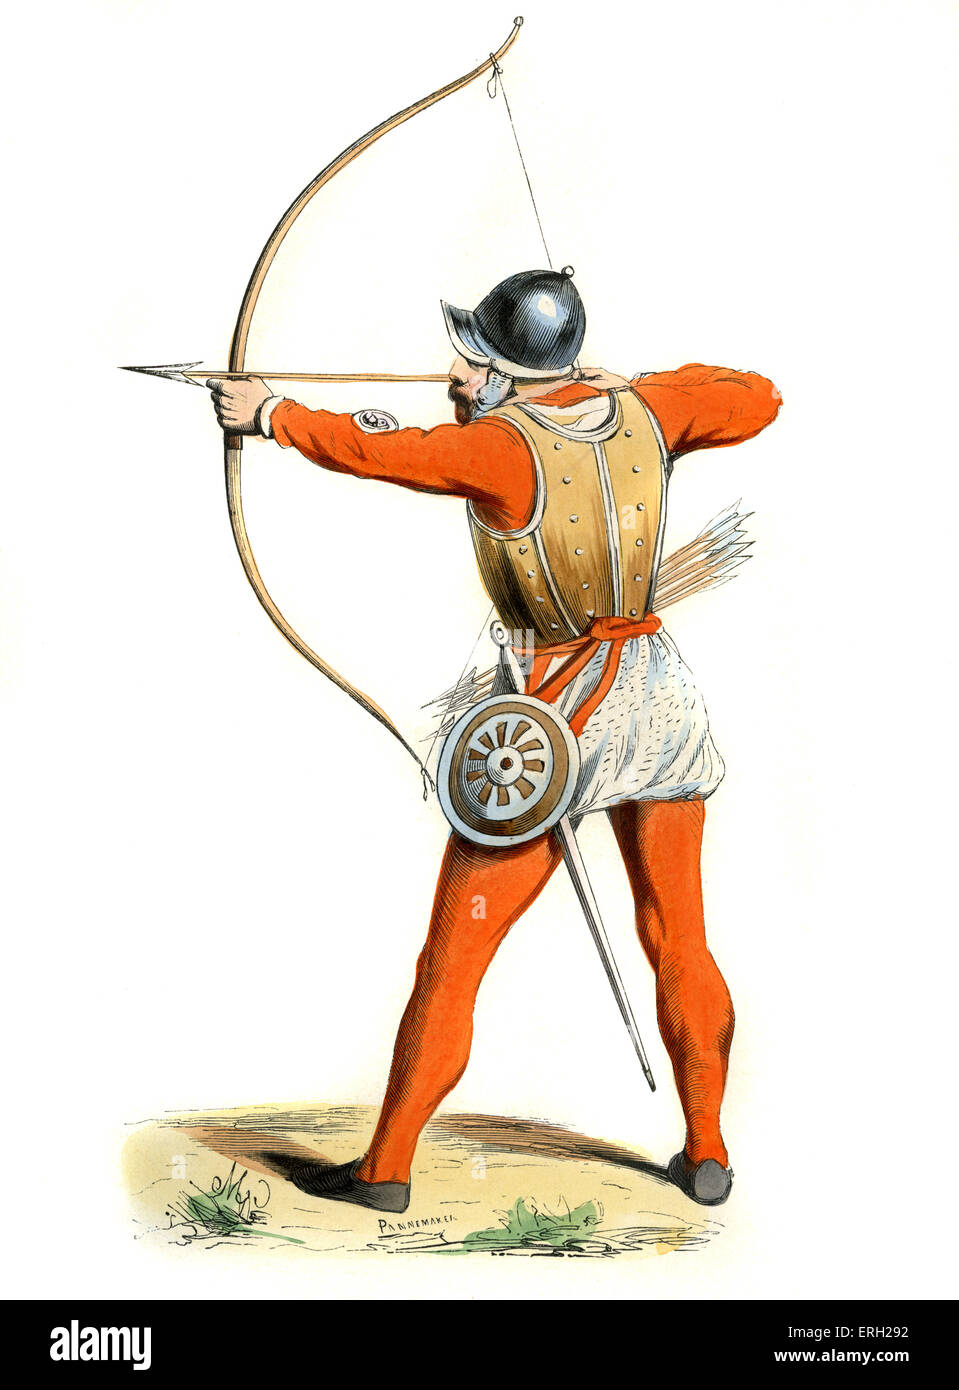 English archer of 15th century  with bow and arrow. These well trained troops would have fought at Agincourt. c. - Stock Image